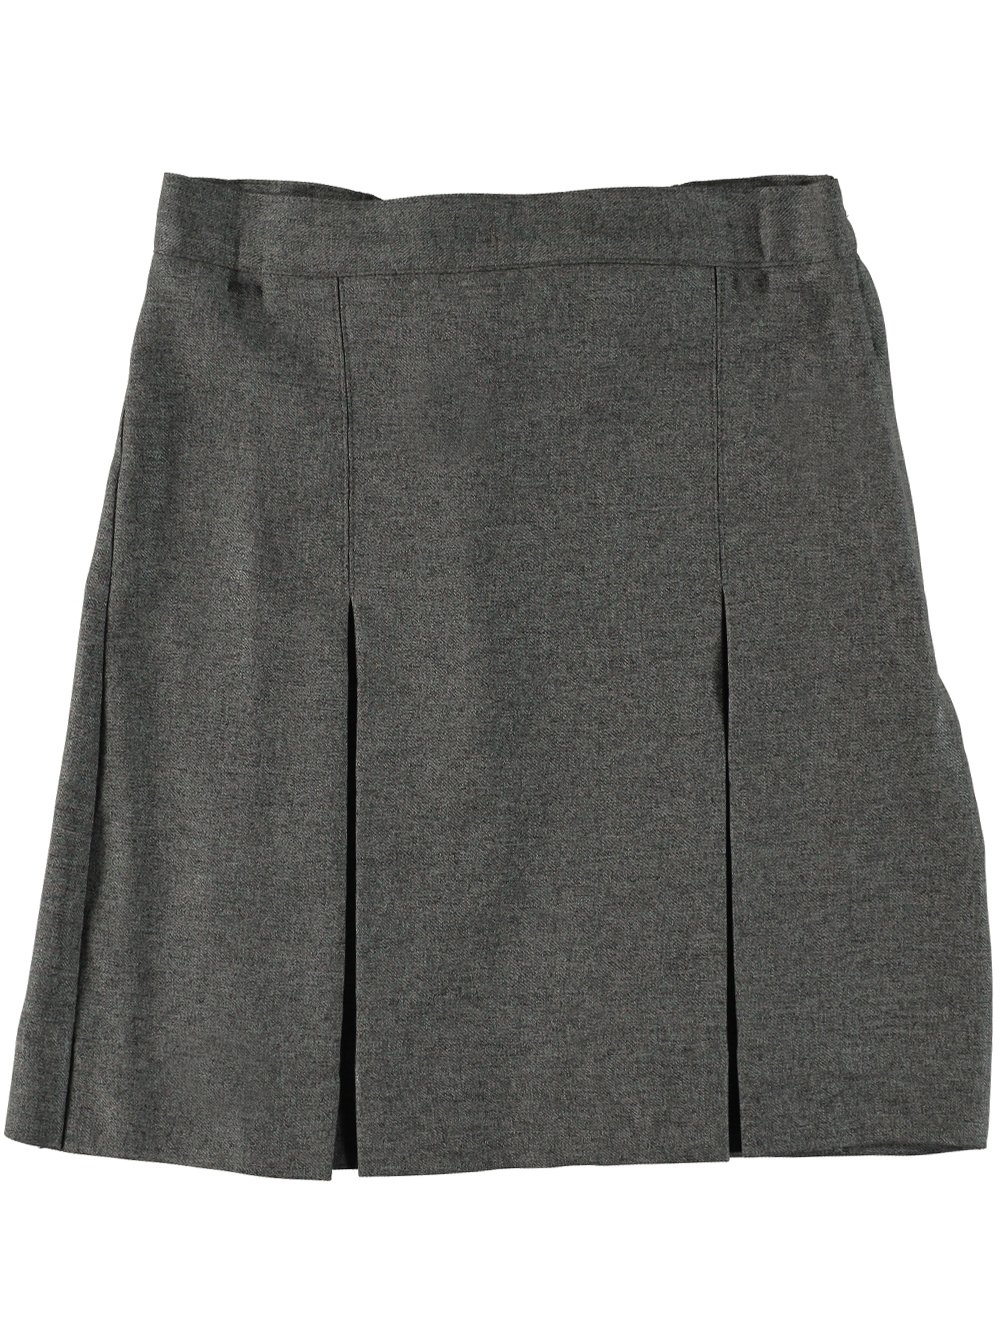 Cookie's Brand Girls' Box Pleat Skirt Cookie' s Brand